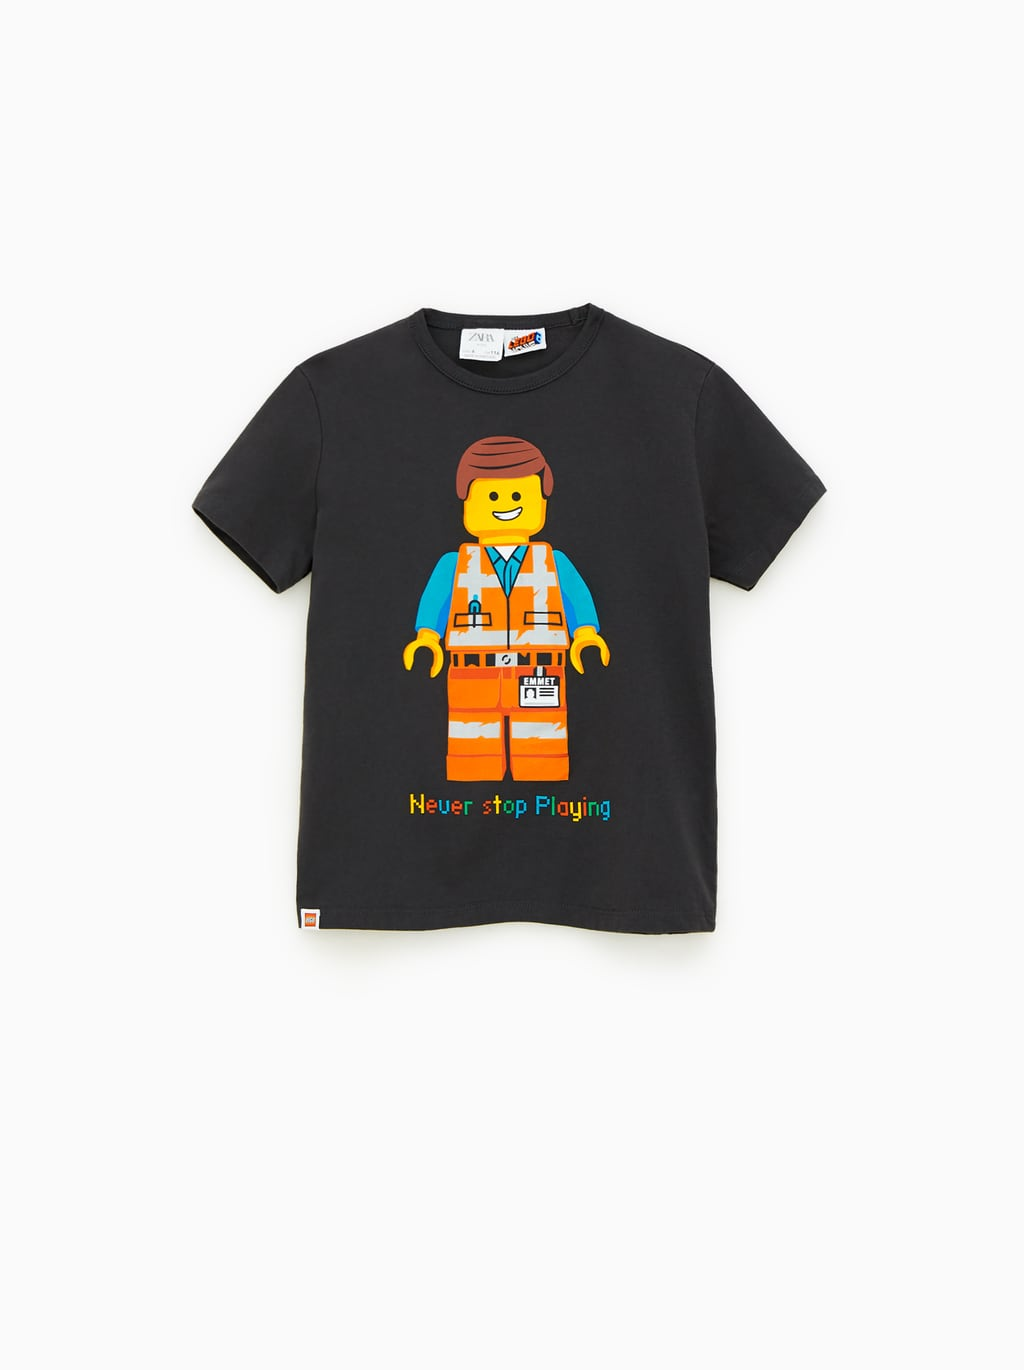 8855c0dc LEGO T - SHIRT-View all-T-SHIRTS-BOY | 5-14 yrs-KIDS | ZARA Saudi Arabia